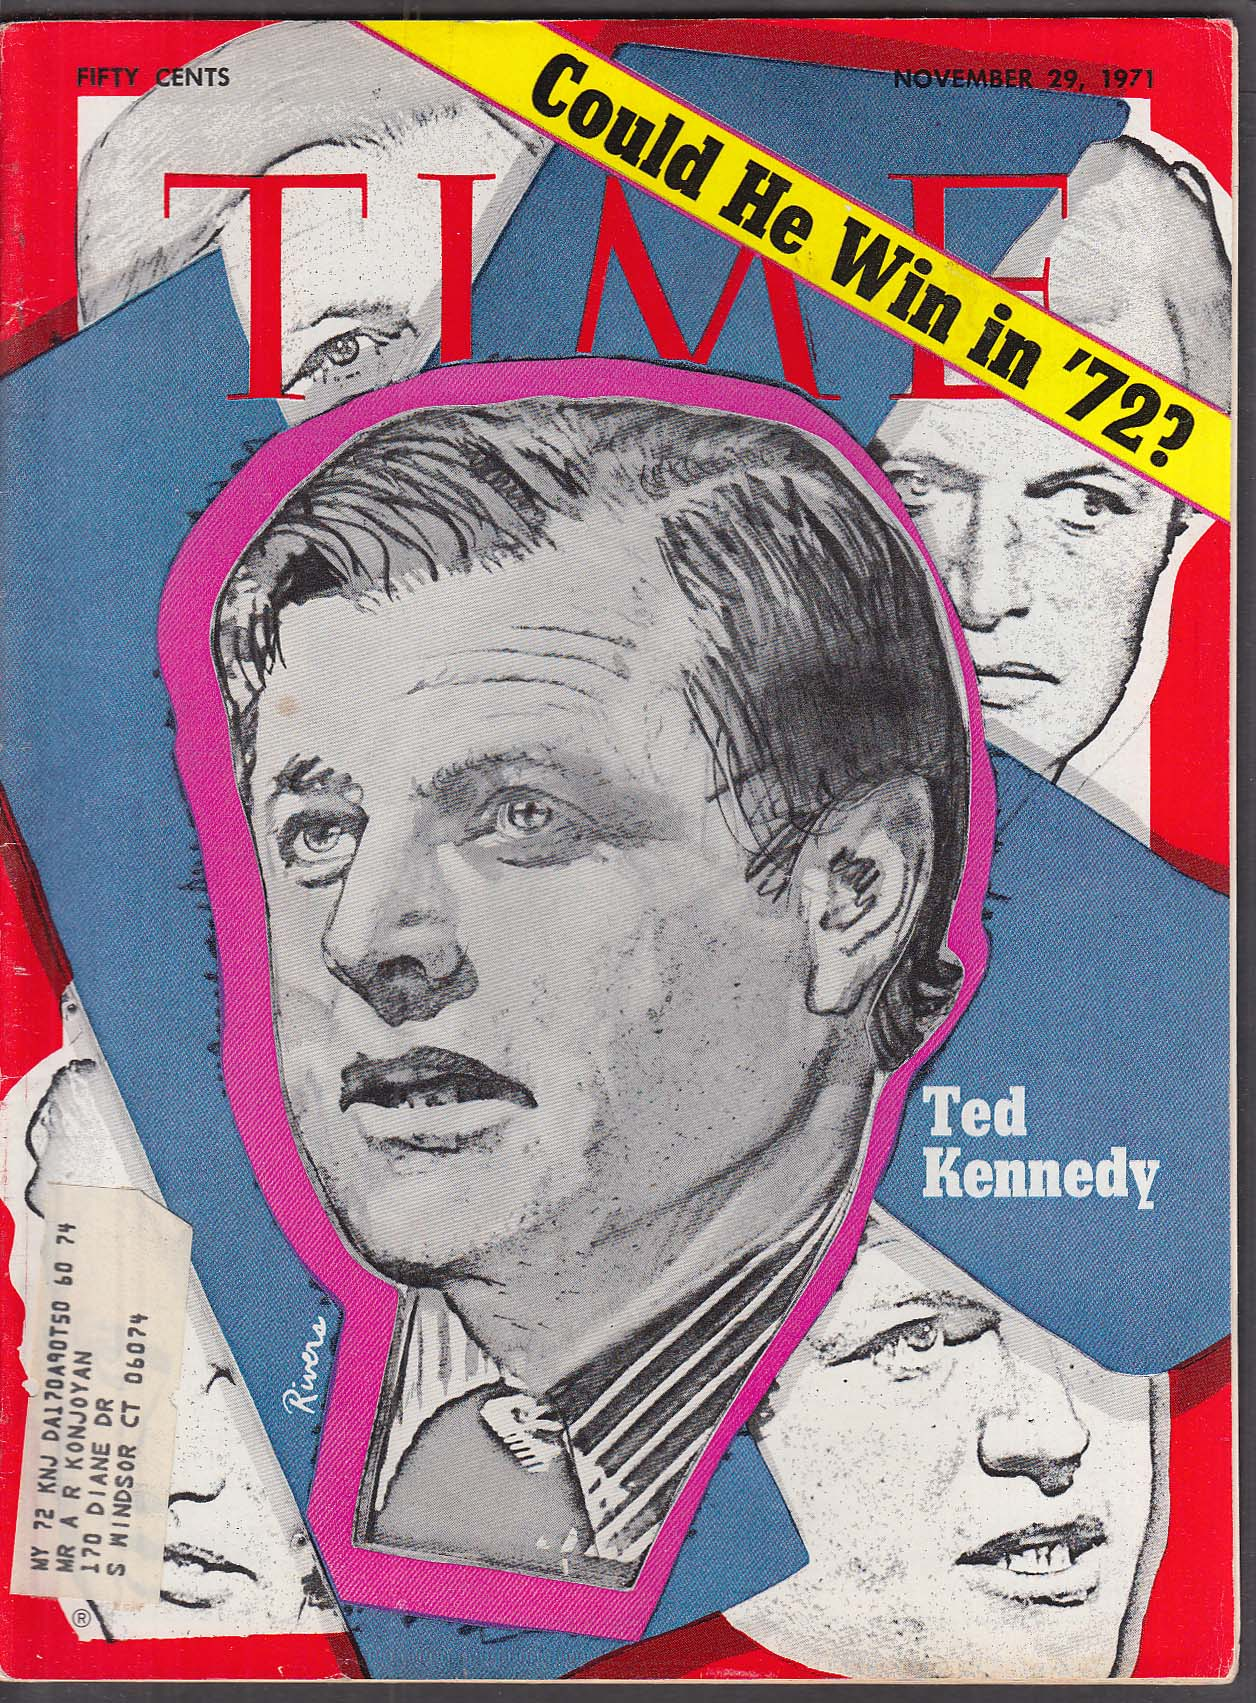 TIME Ted Kennedy by Larry Rivers Castro in Chile 11/29 1971